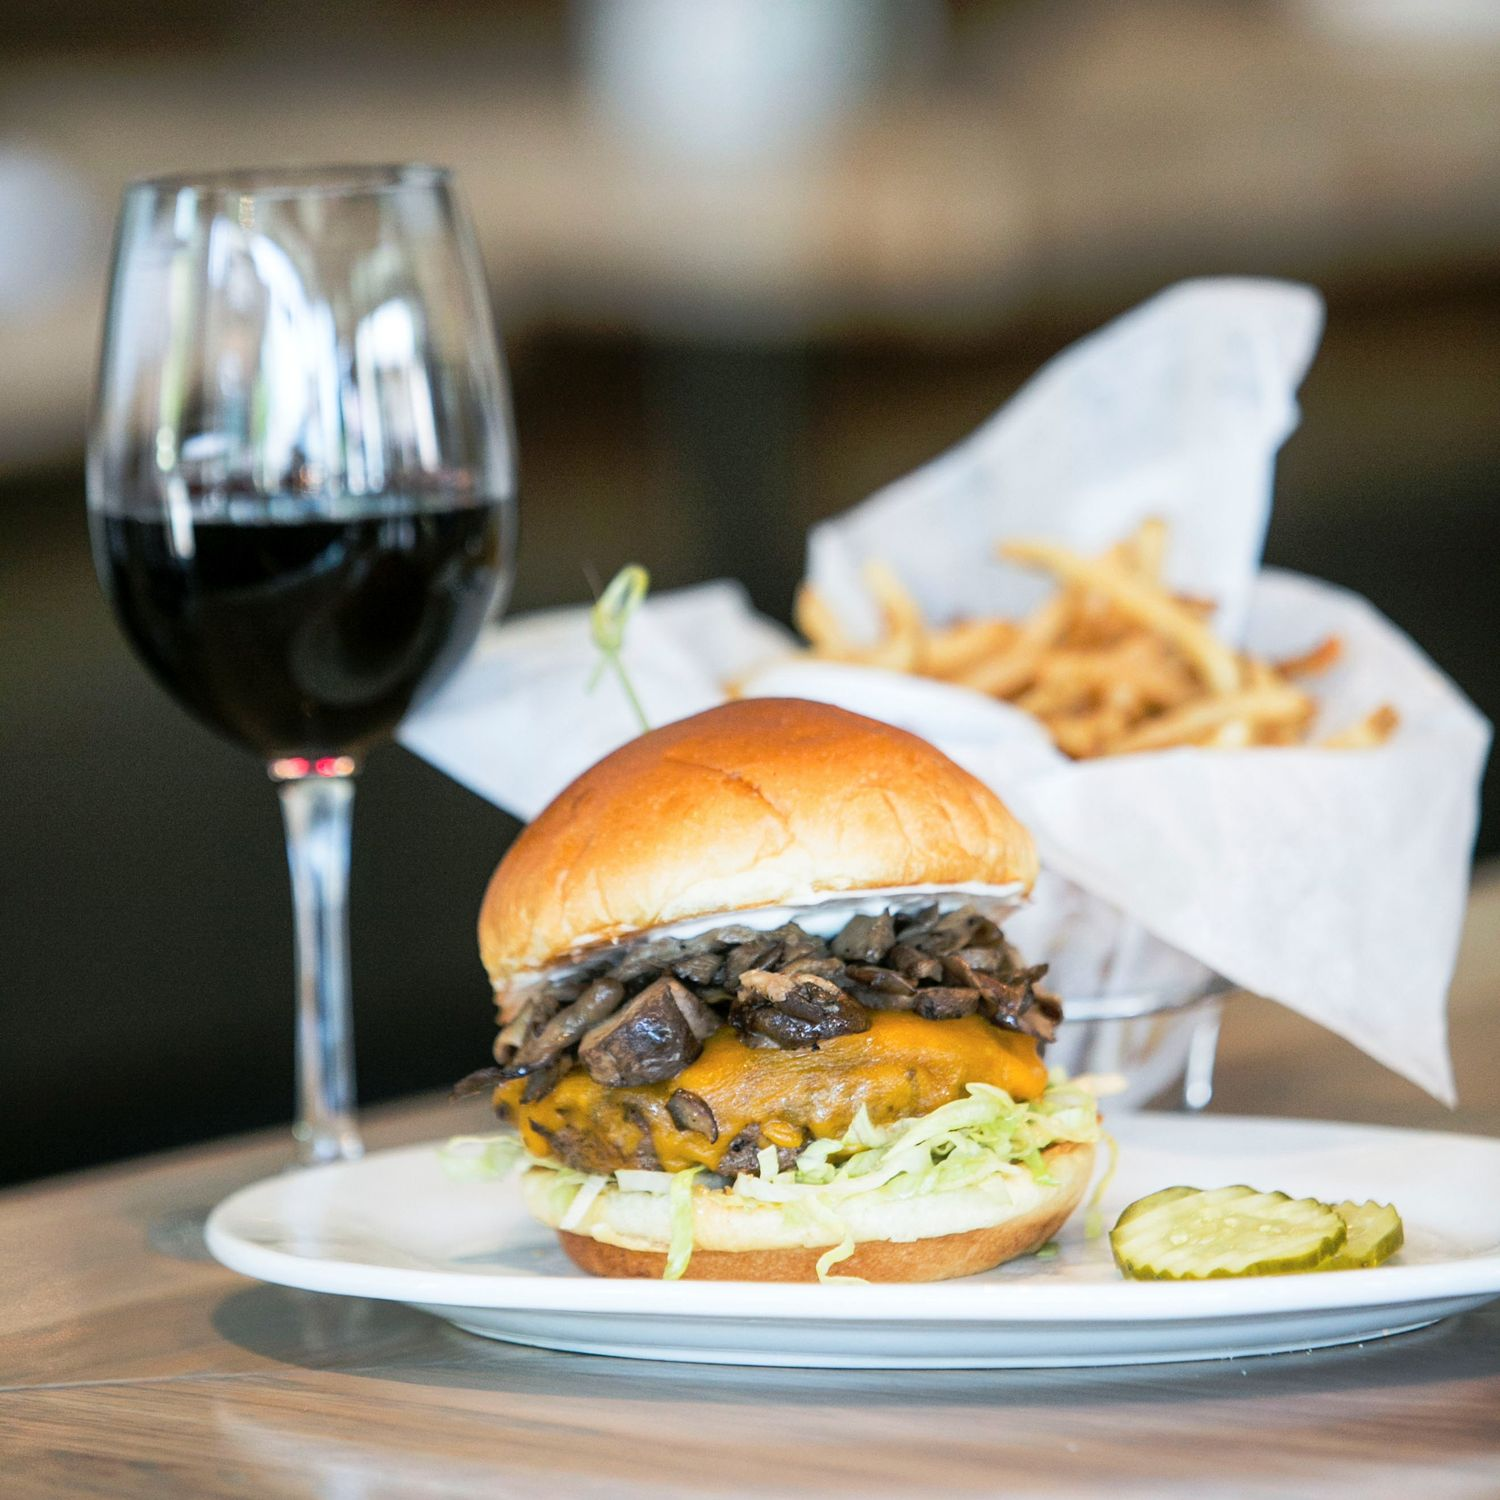 First Zinburger Wine & Burger Bar in Maryland To Host Job Fair September 29 - October 10 in Hanover